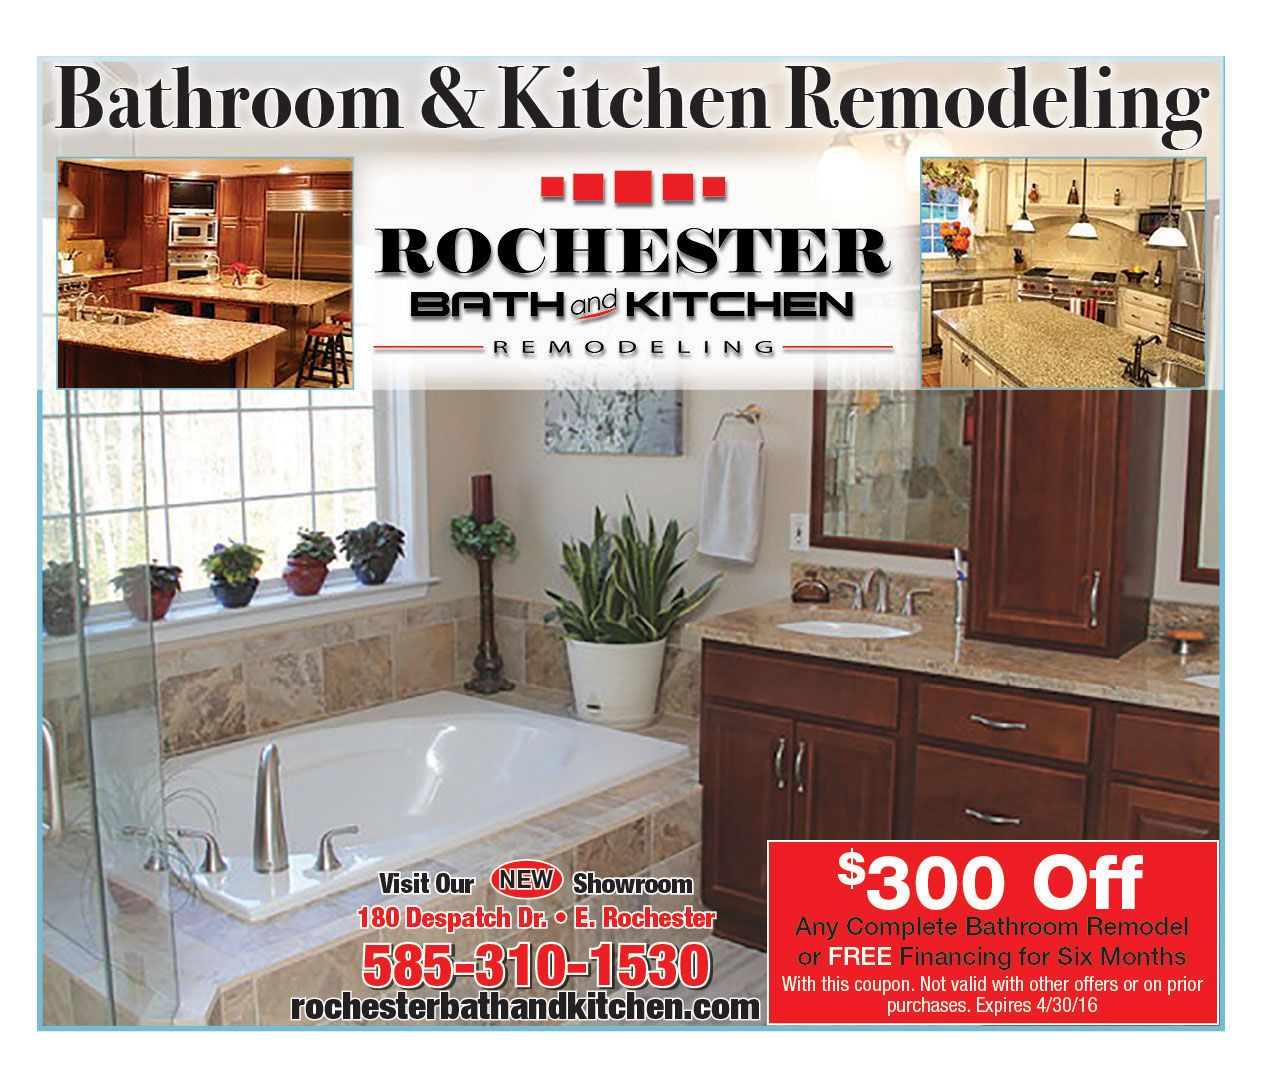 Rochester Bath U0026 Kitchen Remodeling At The BCB Home Show In February At The  Dome Arena